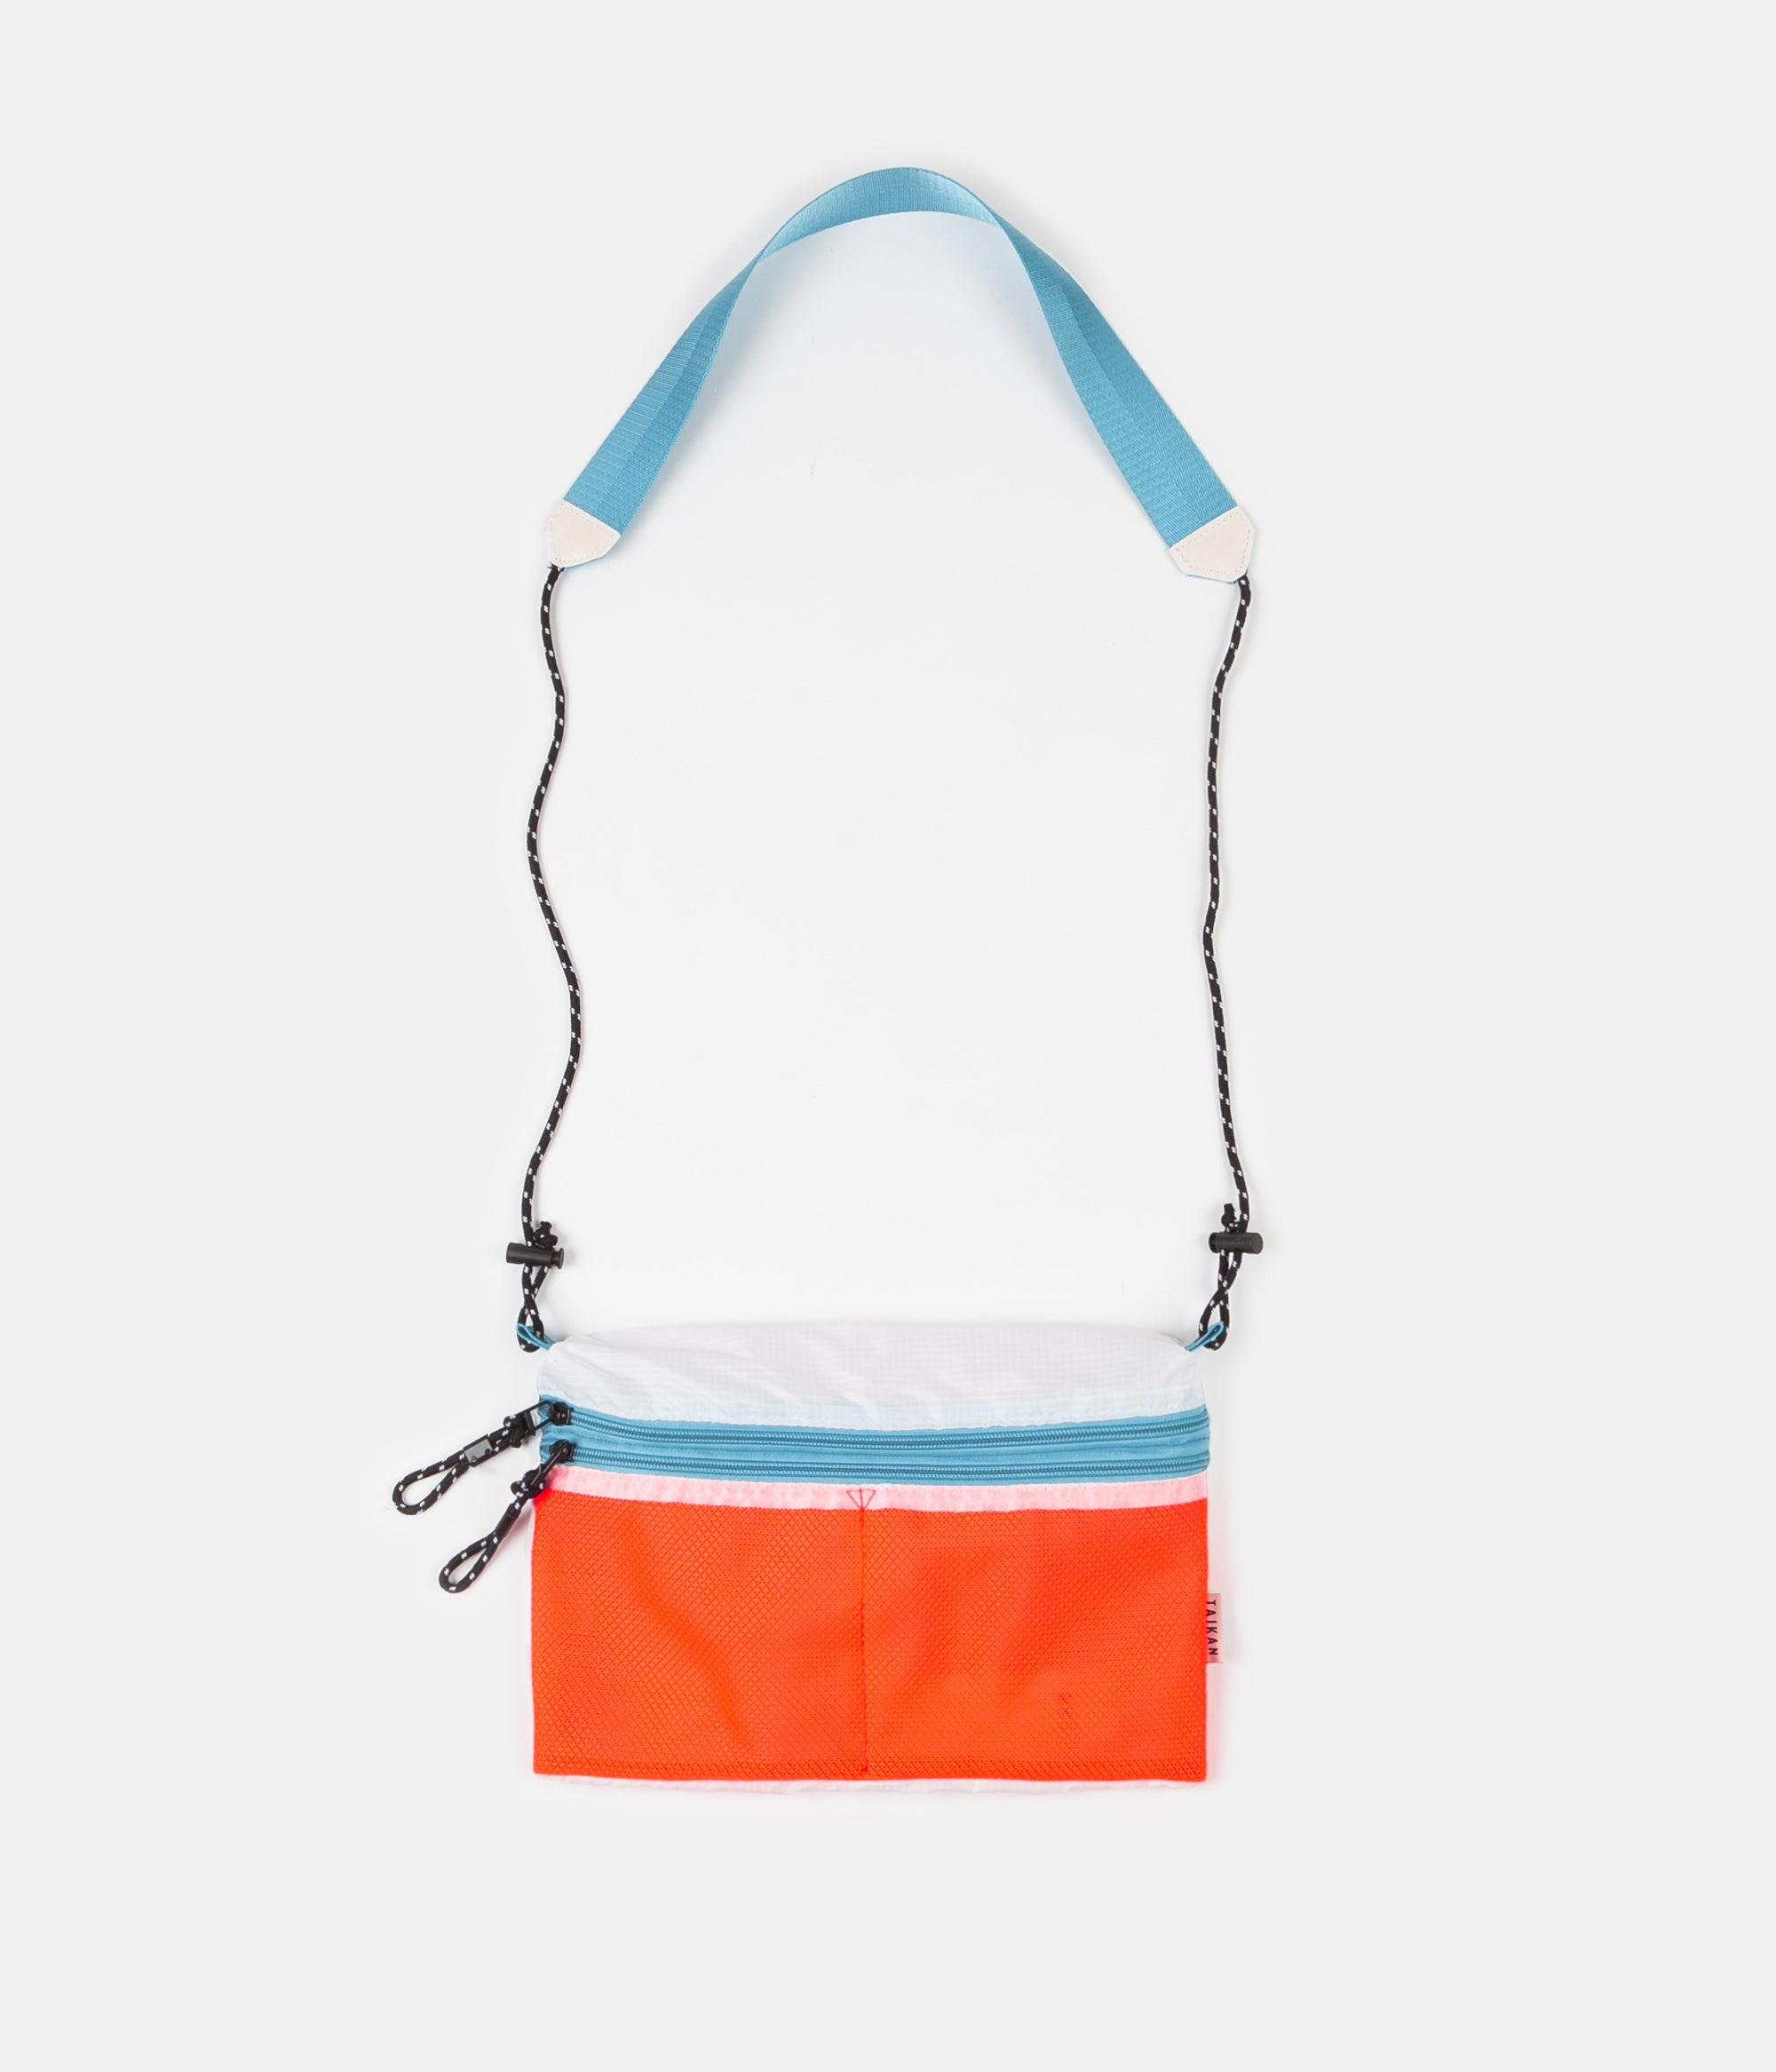 Taikan Everything Sacoche Bag - Orange / White / Teal - Large